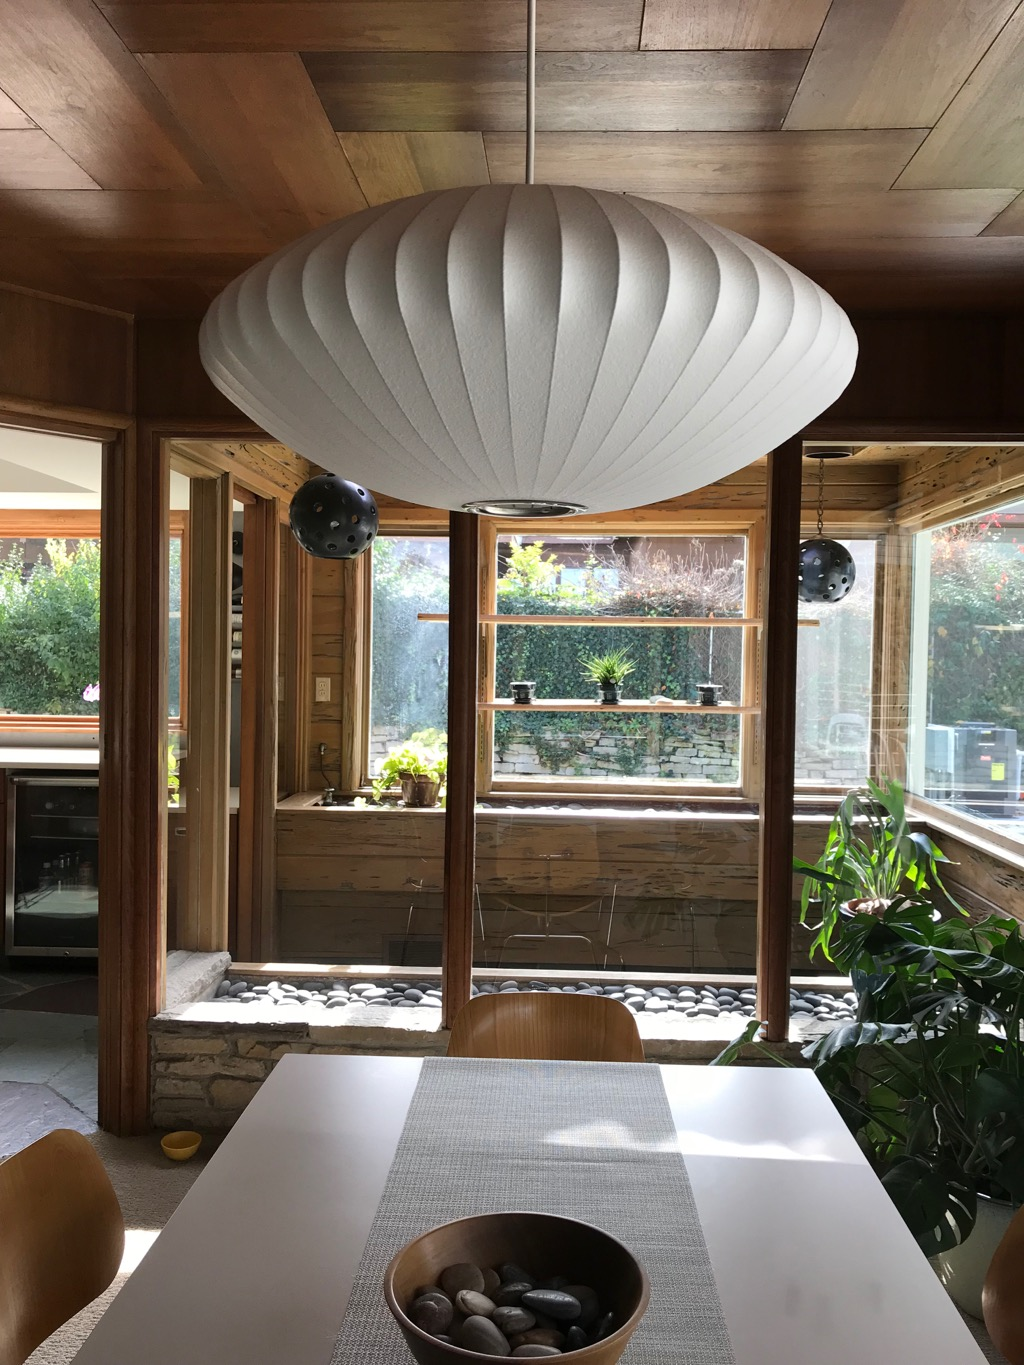 George Nelson Bubble Lamp in the Dining Area of this Modern Alexander McColl Home.